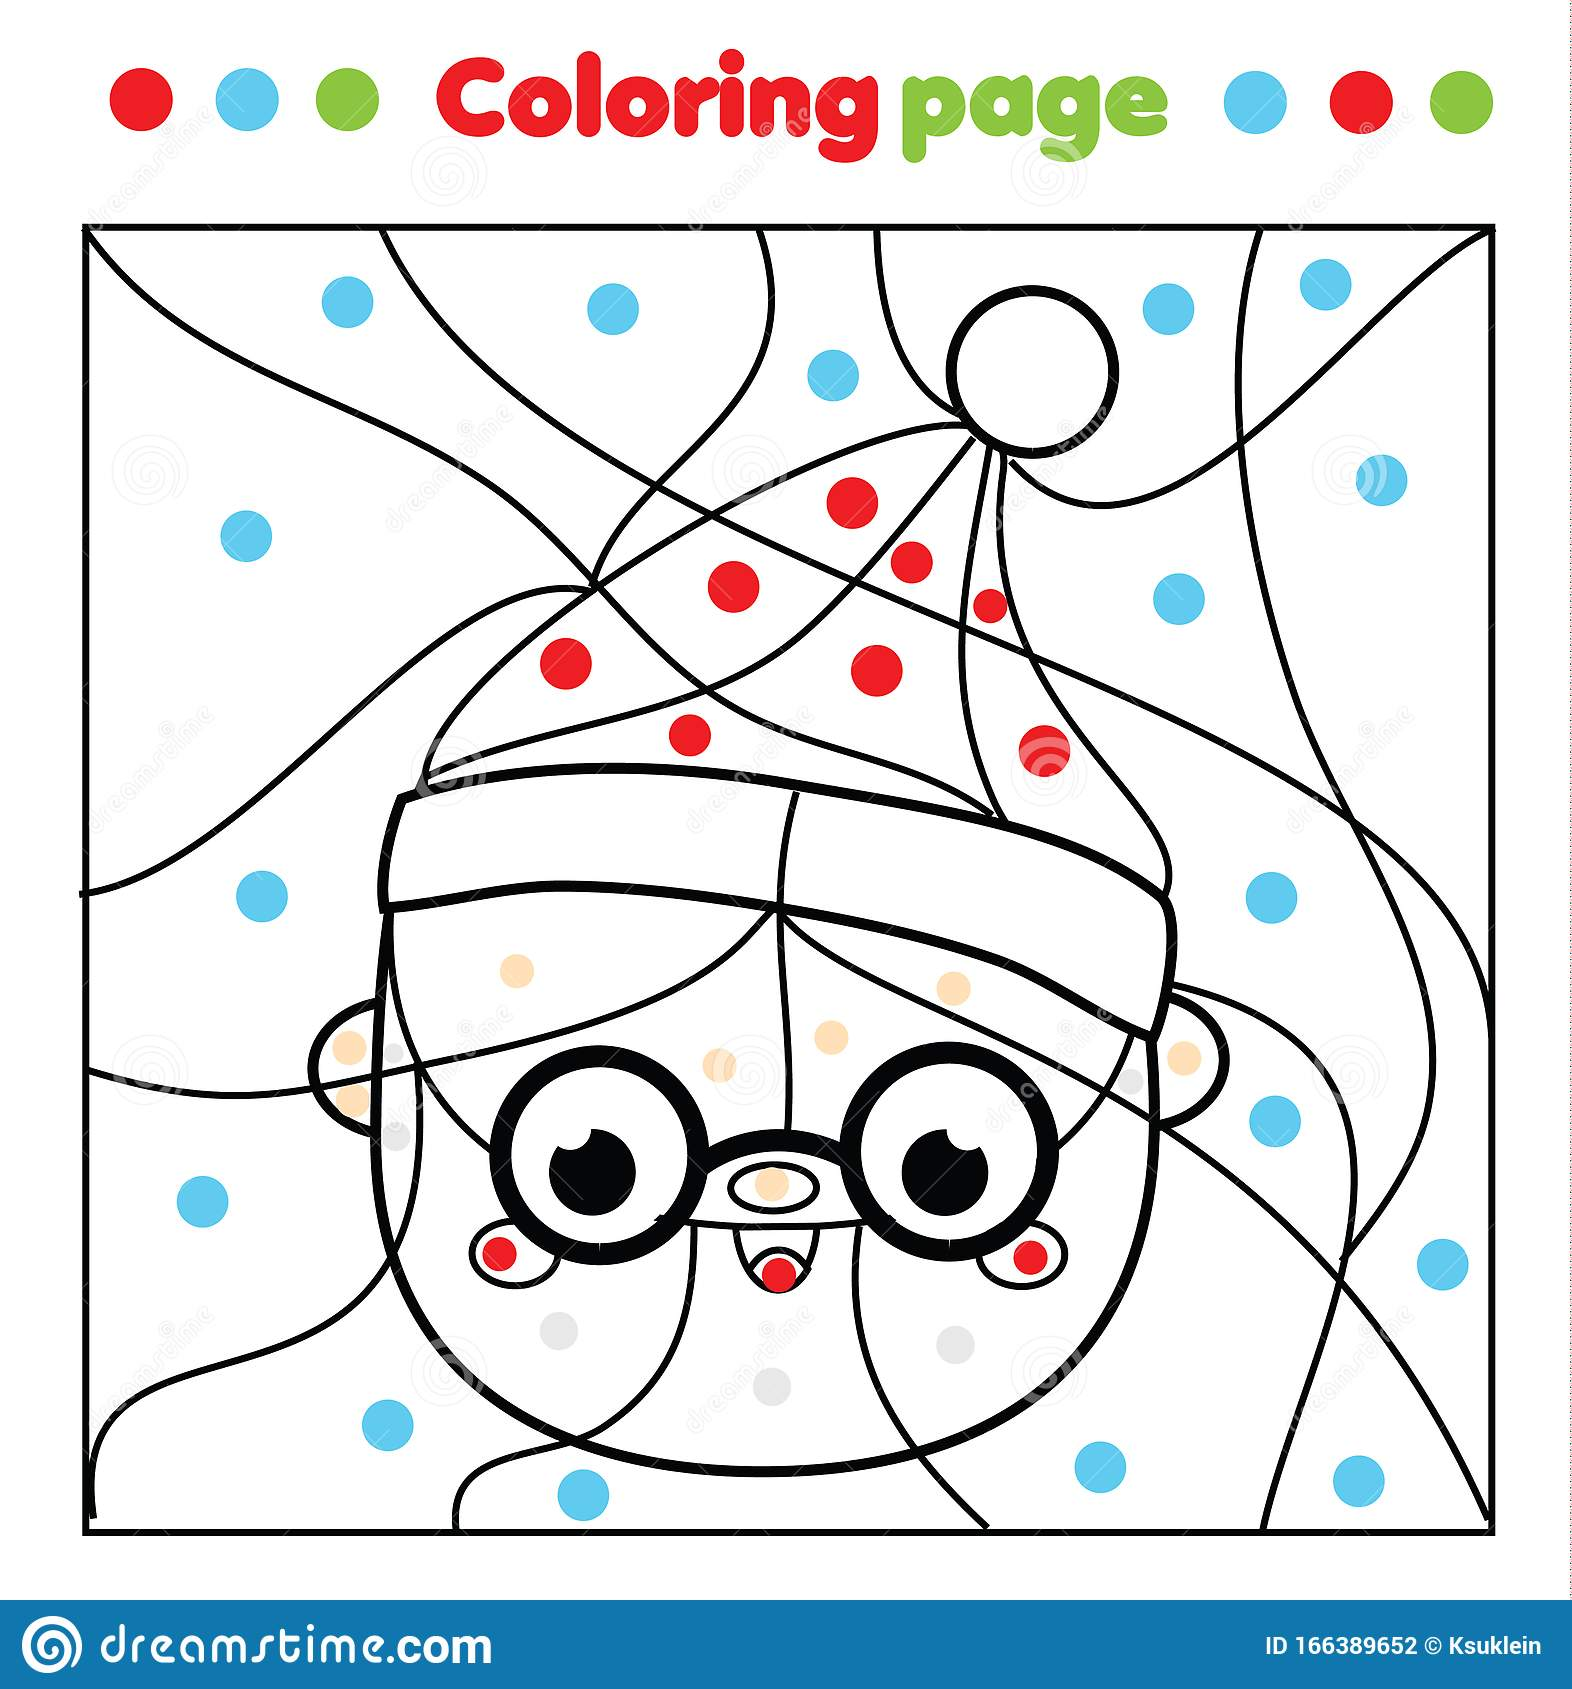 Dad with kids coloring page | Fathers day coloring page, Coloring ... | 1689x1572